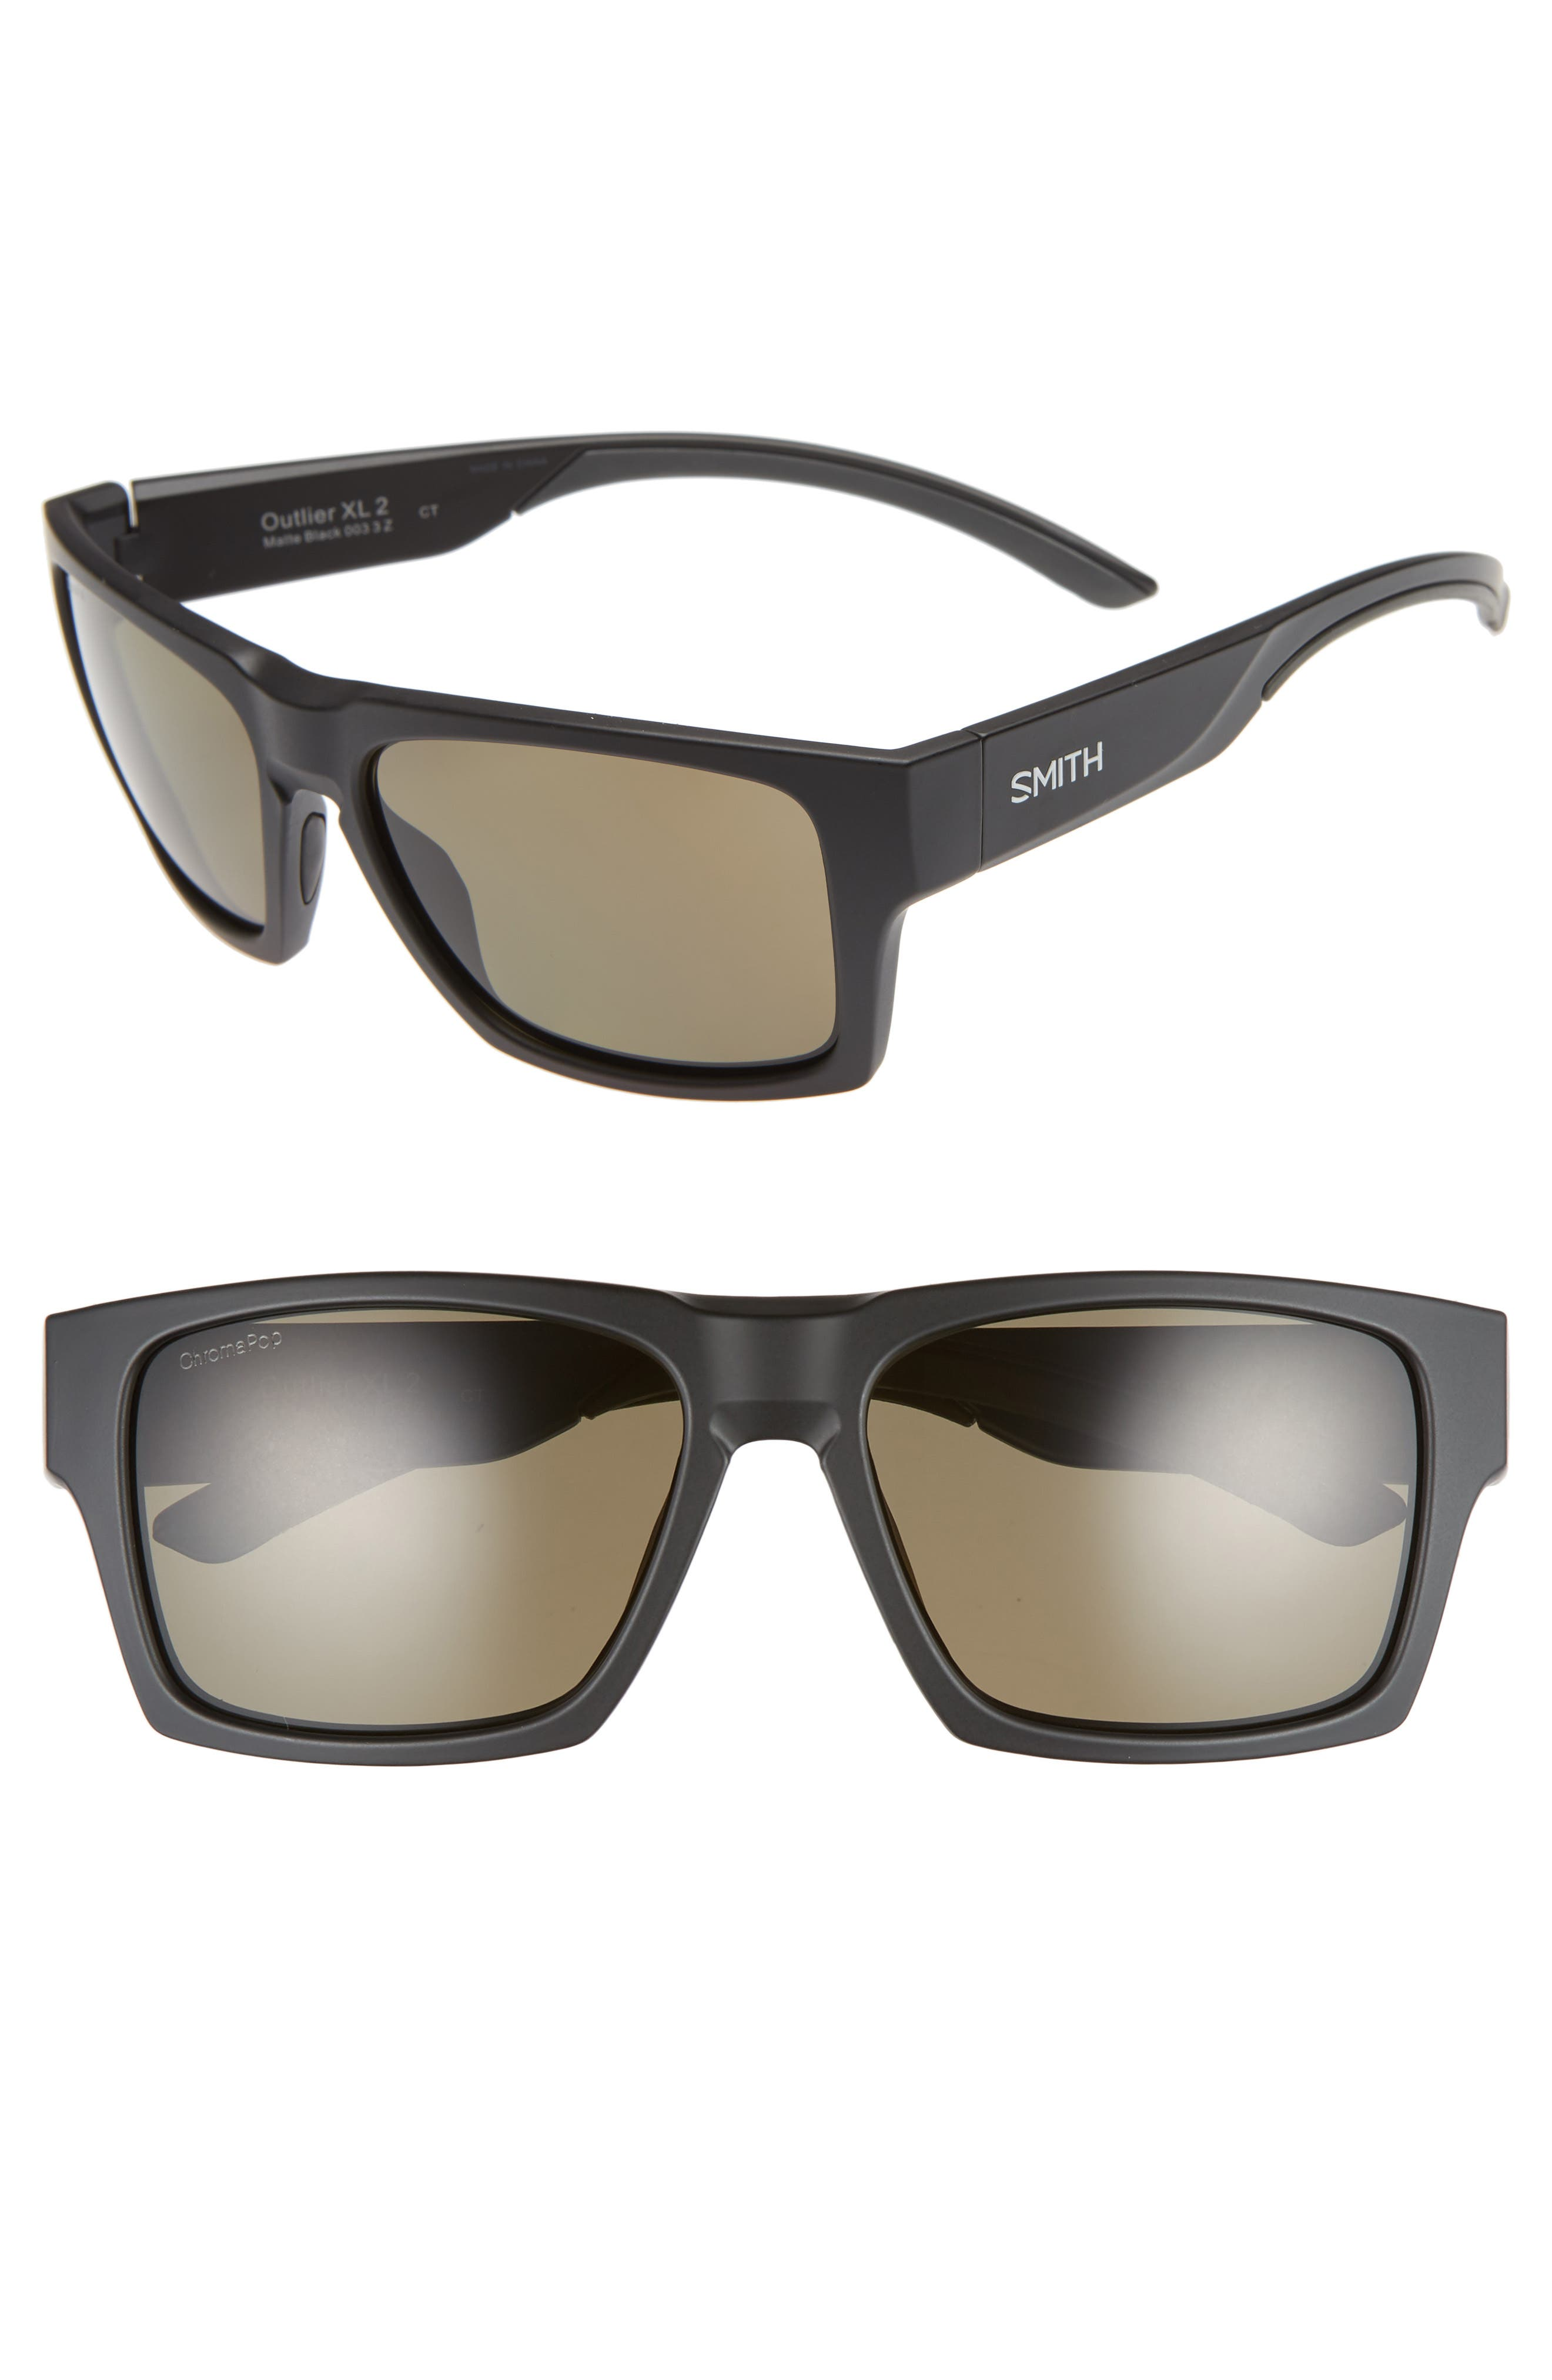 SMITH OUTLIER 2XL 59MM POLARIZED SUNGLASSES - MATTE BLACK